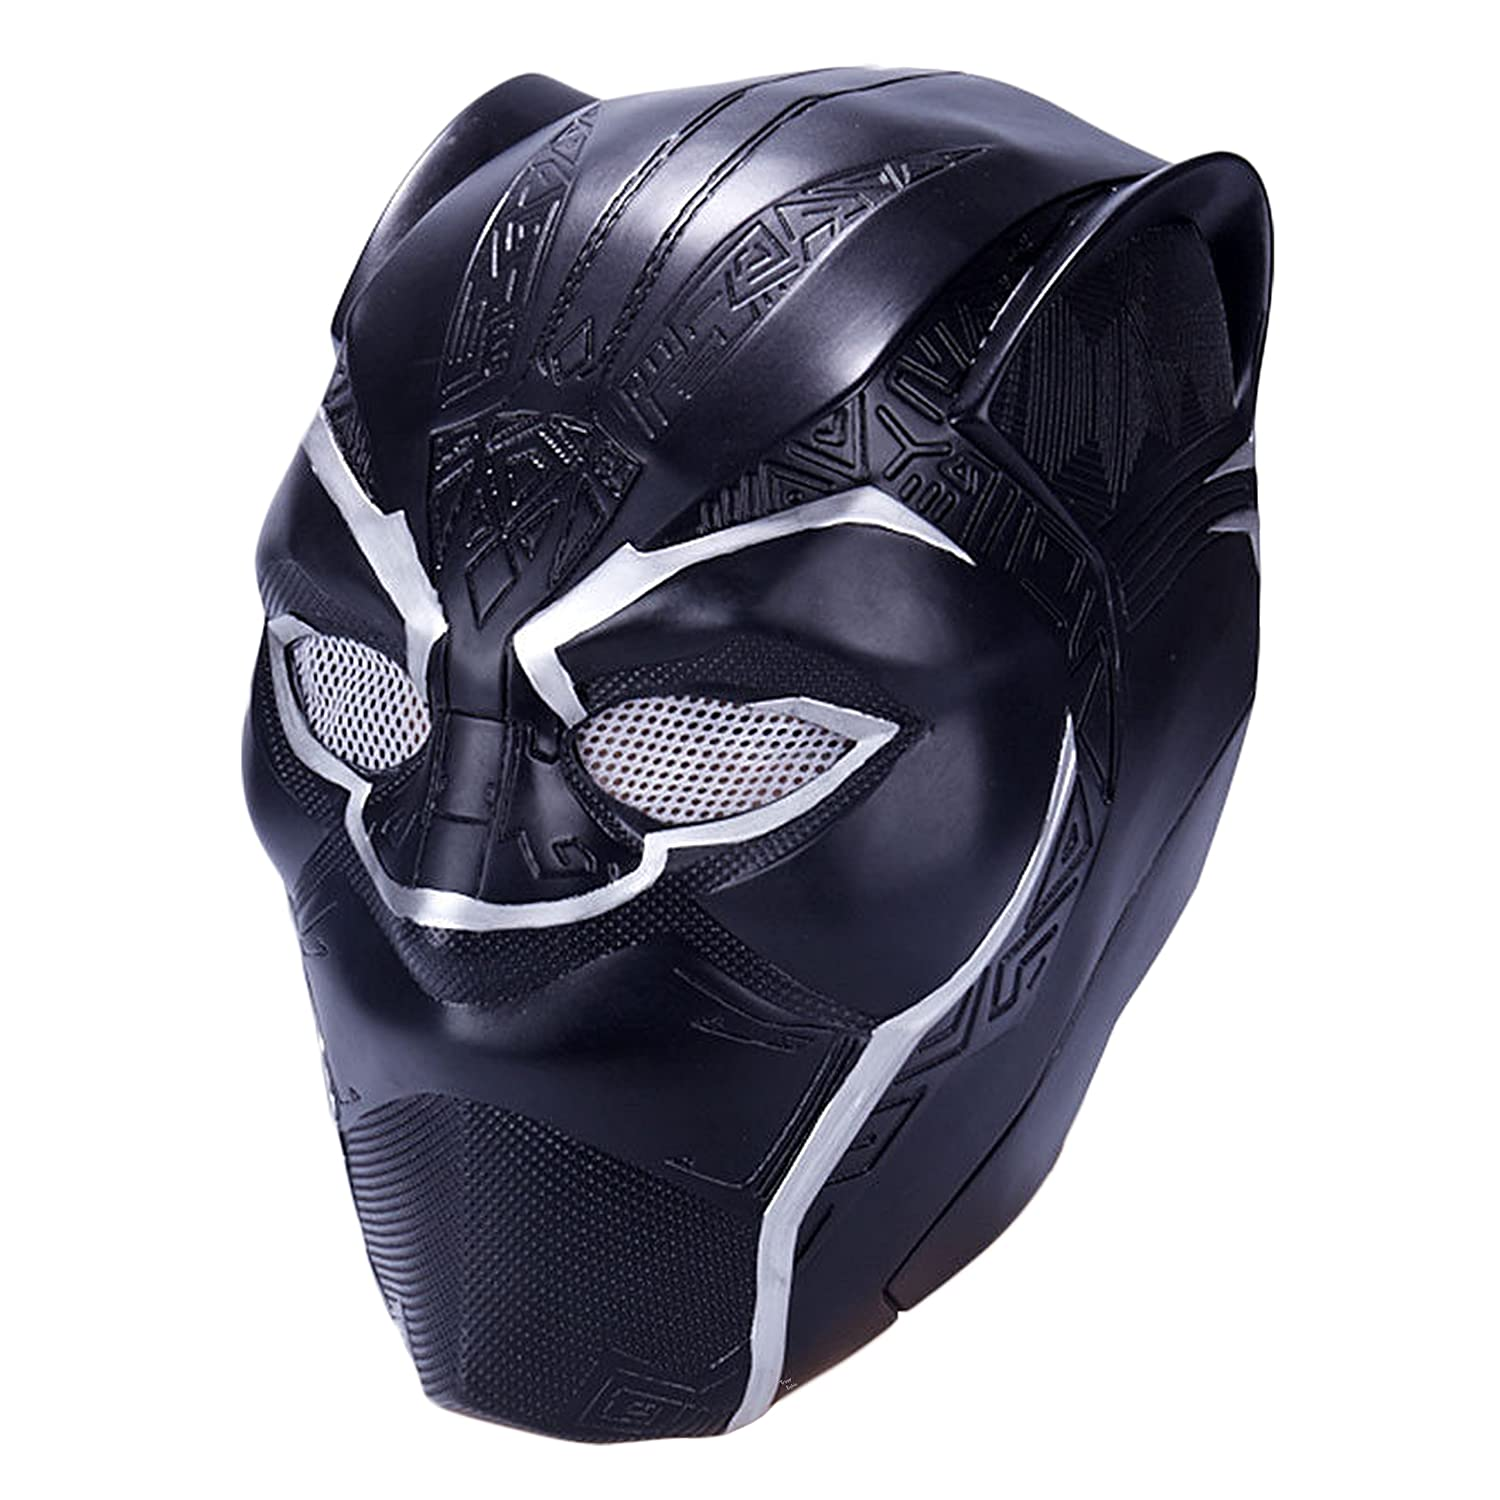 Trippy Lights 2018 Black Panther Movie T'Challa Superhero Latex Costume Mask Helmet